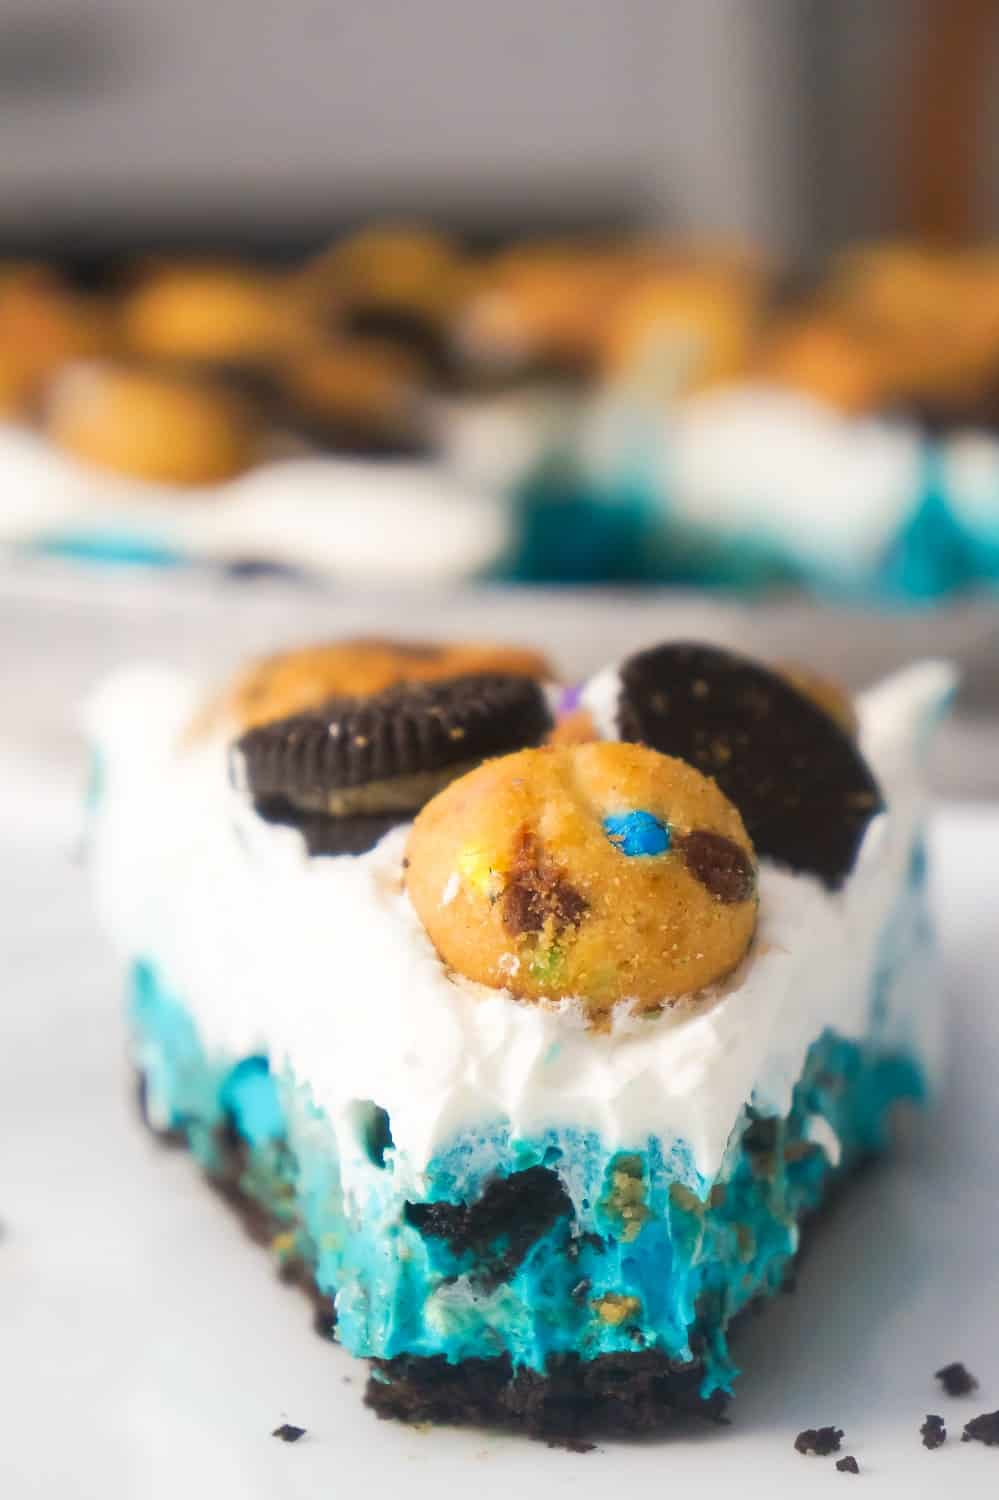 No Bake Cookie Monster Pie is an easy dessert recipe your kids will love. This colourful pie is made with instant pudding and Cool Whip in an Oreo crust and loaded with a variety of mini cookies.